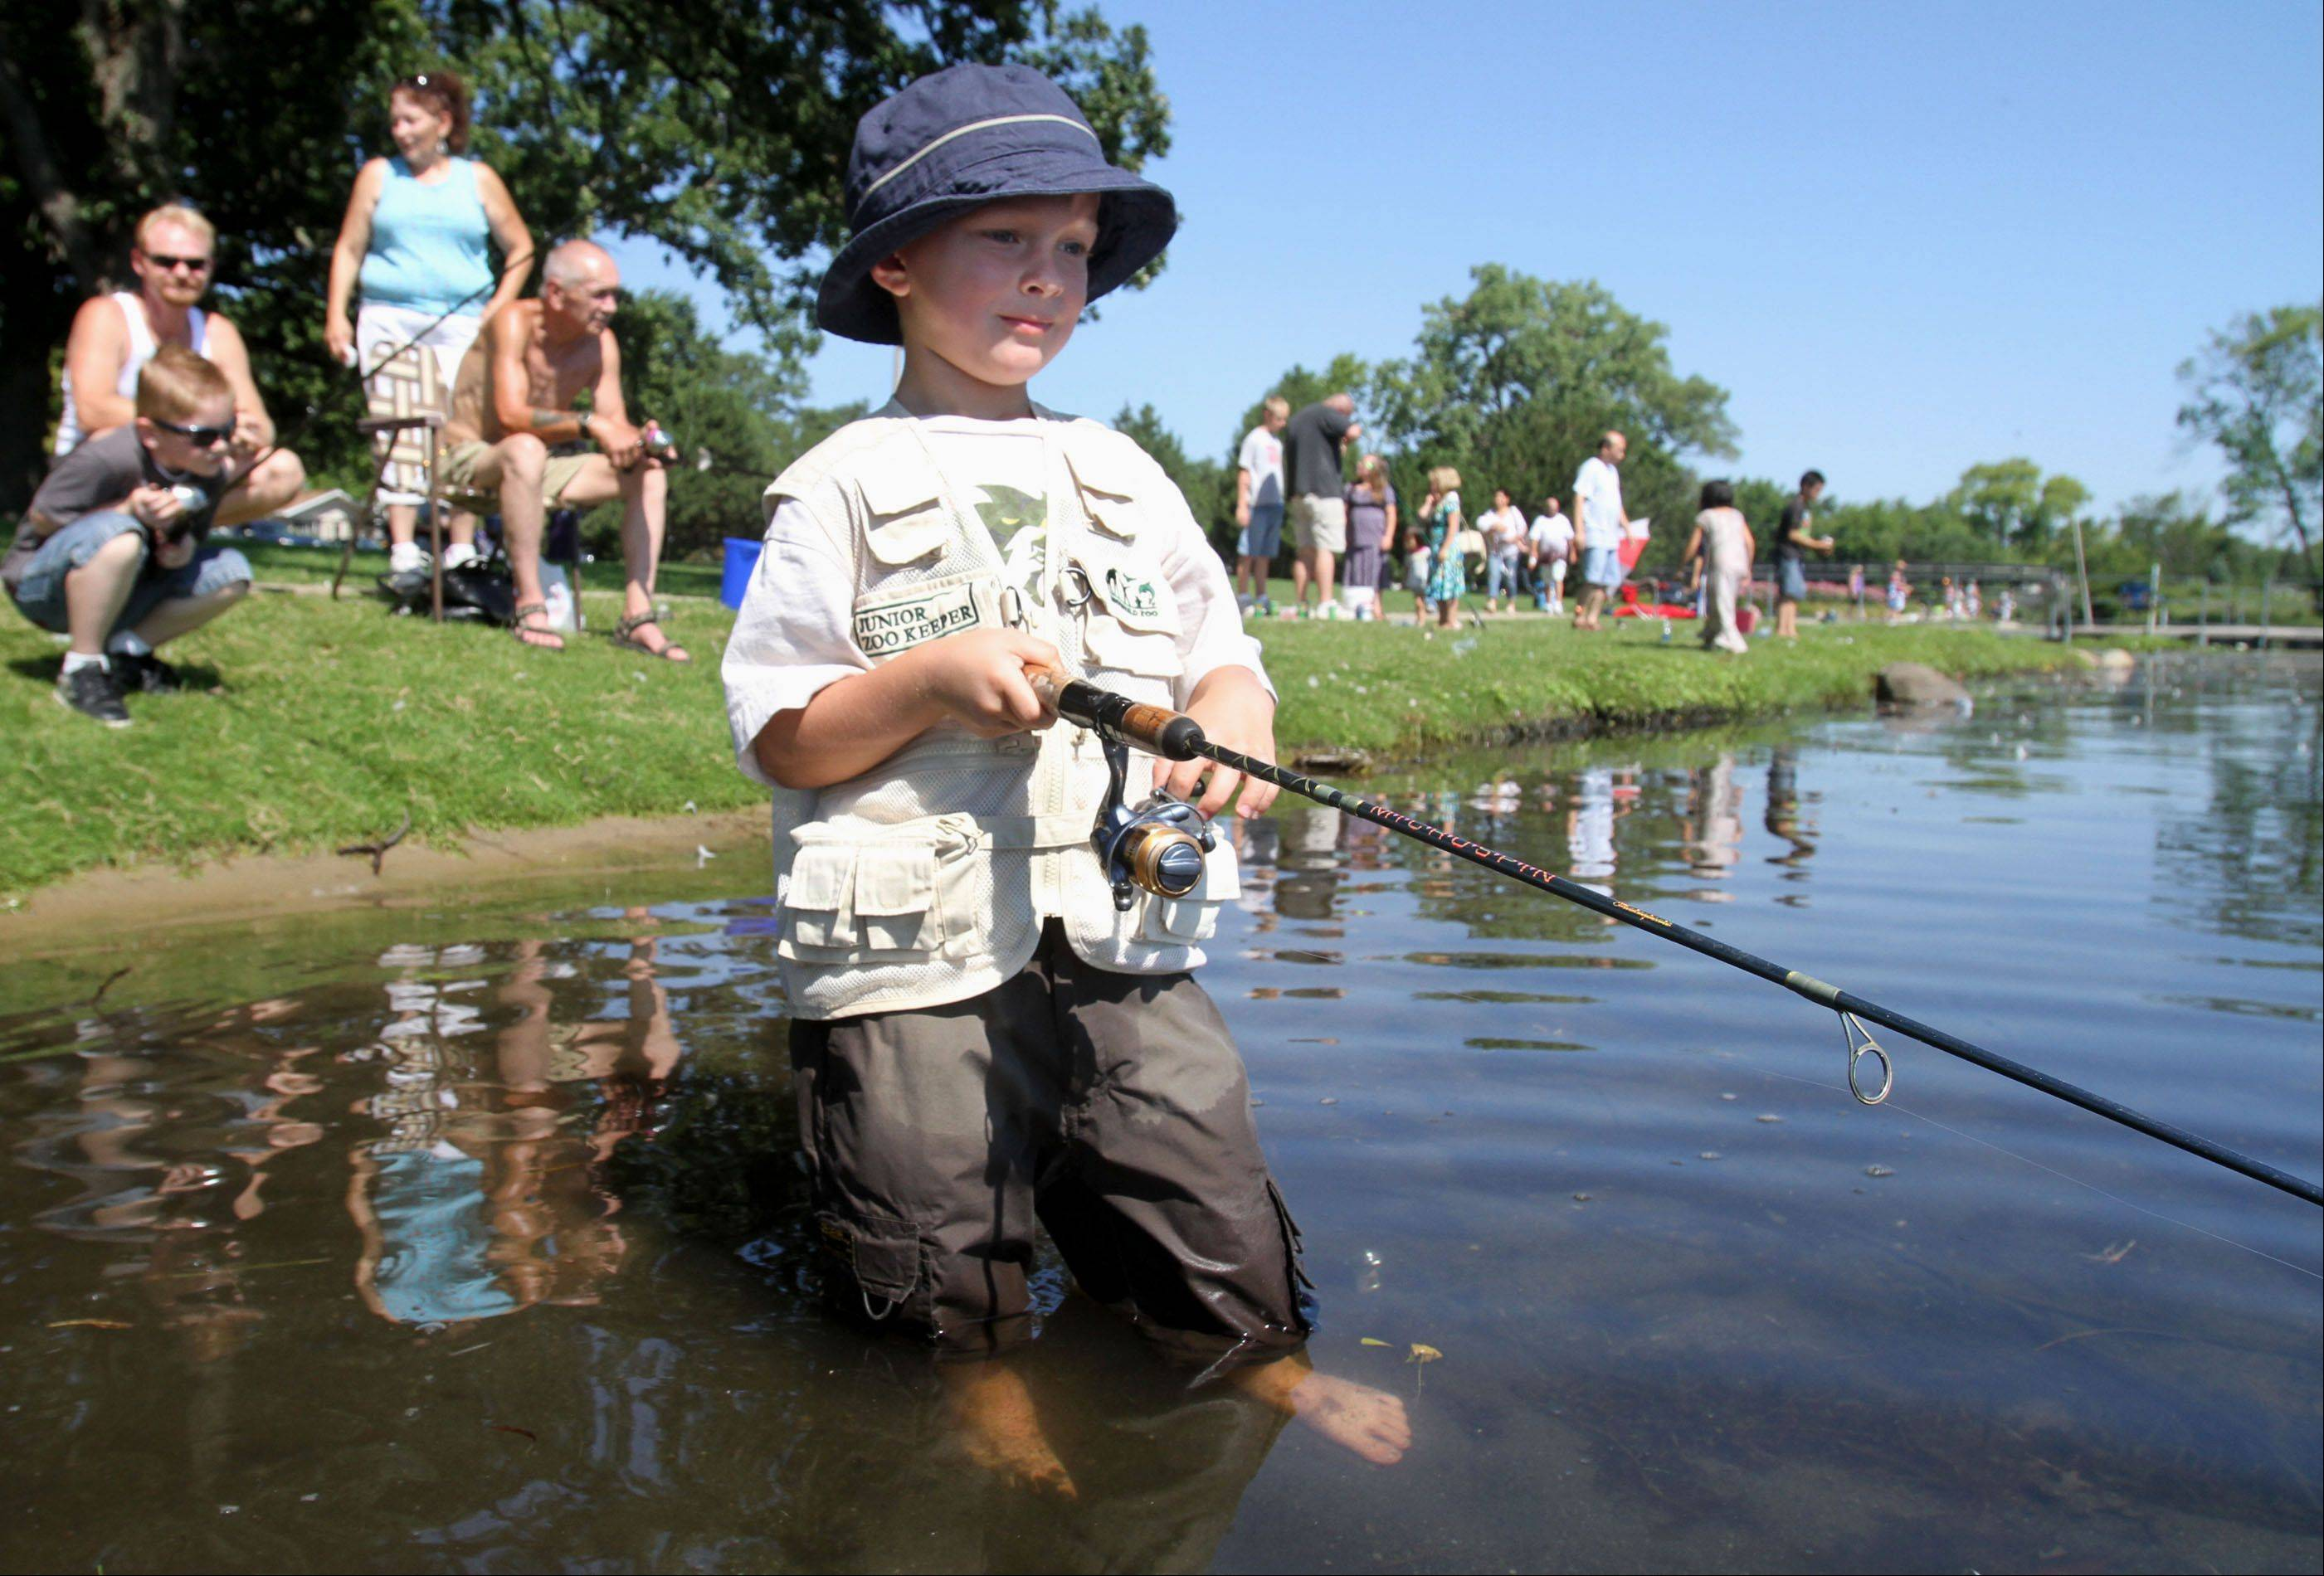 Nick Bryzhenyuk, 5, of McHenry, wades in the water, with no luck, at the �Fishing should be fun� fishing derby held by the Competition Bassmasters of Northern Illinois at Round Lake Beach Park on Saturday.